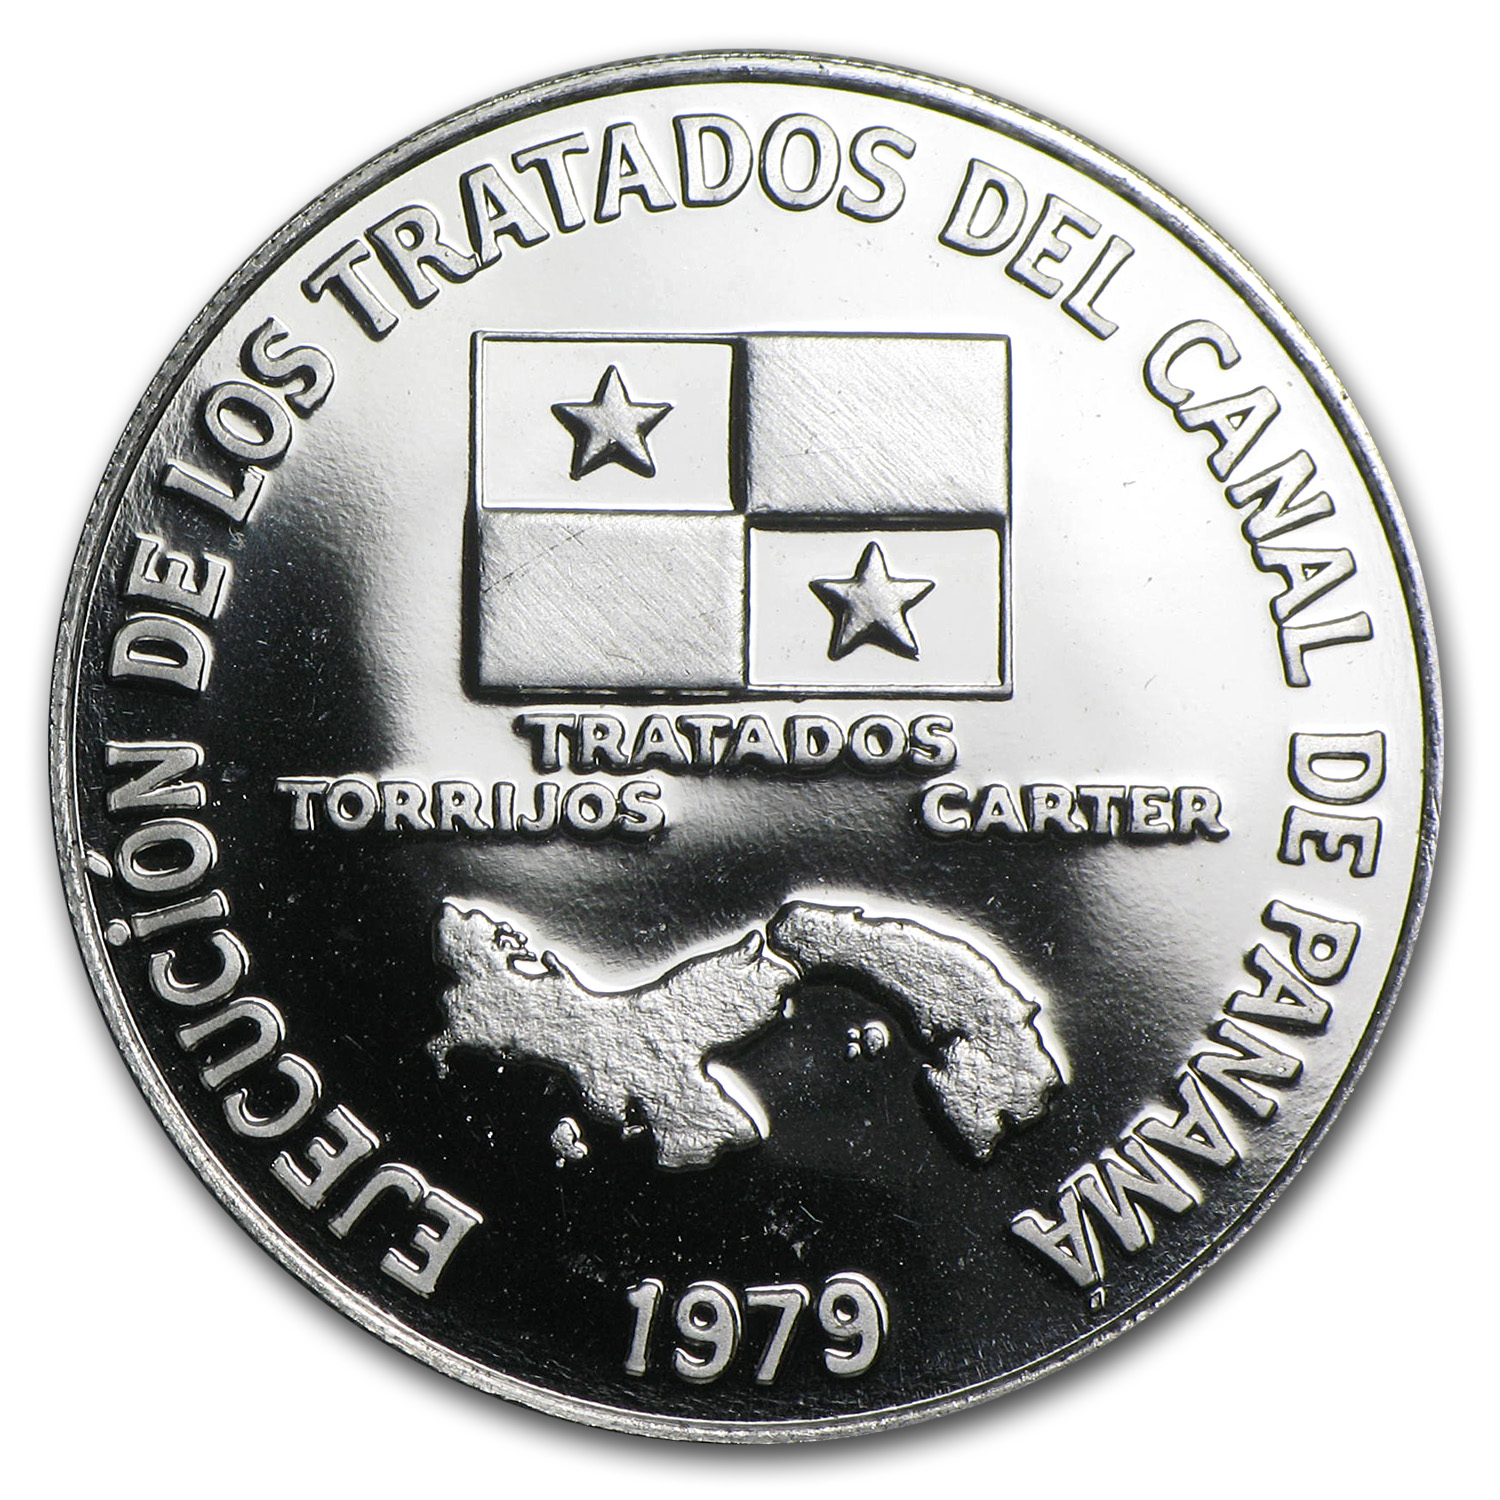 1979 Panama Platinum 200 Balboas Proof (APW .2993 oz)